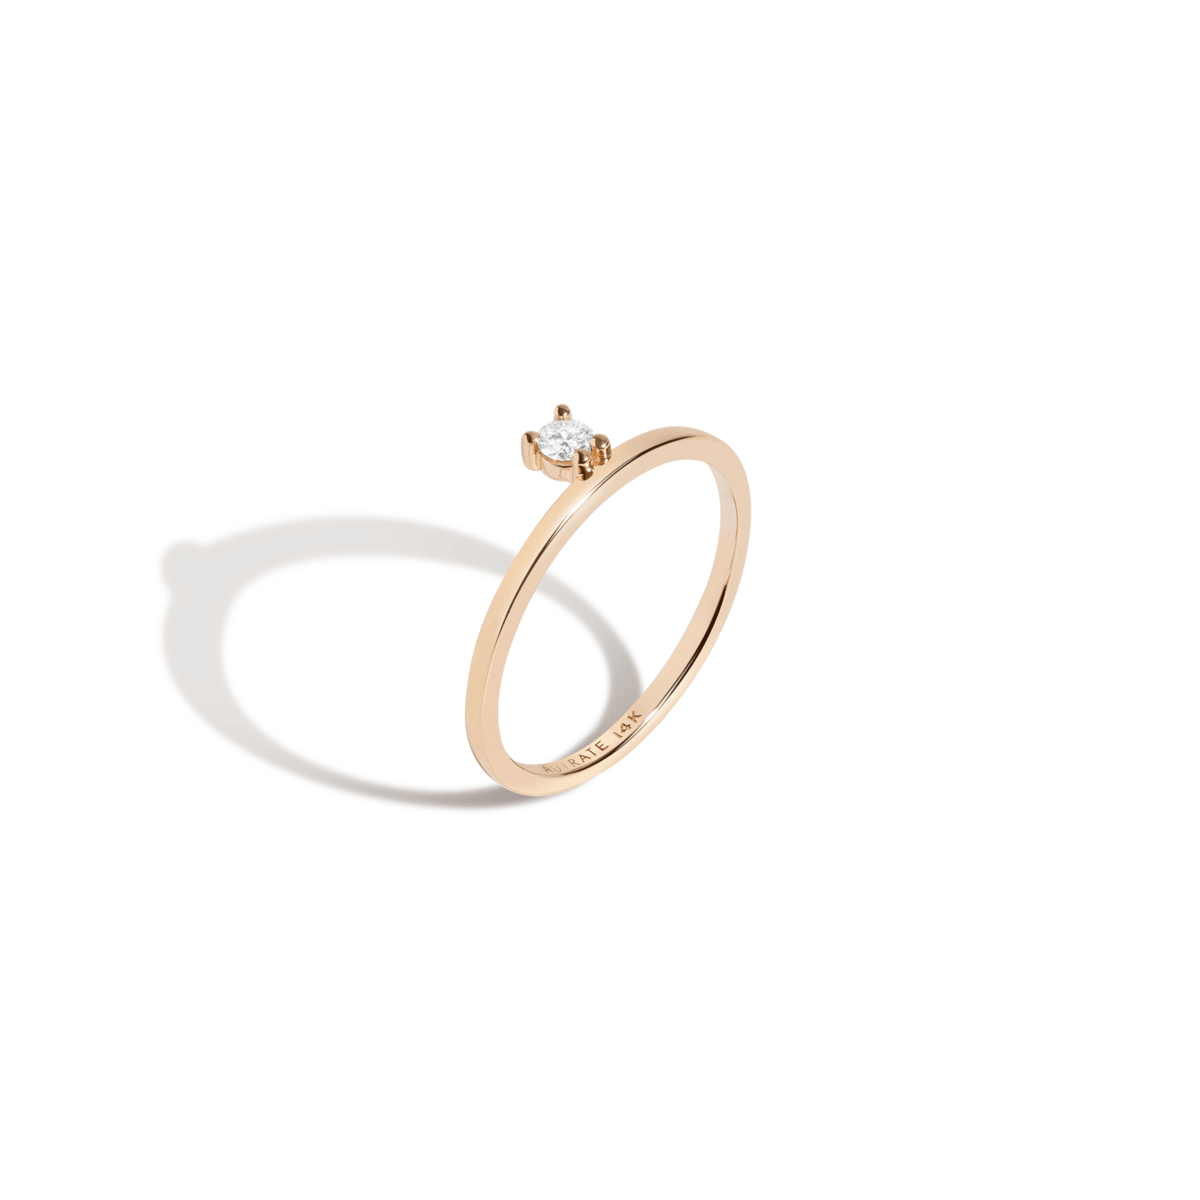 4c64637d87d8b6 Floating Diamond Ring | J.E.W.E.L.S. | Diamond, Rings, 14k gold jewelry